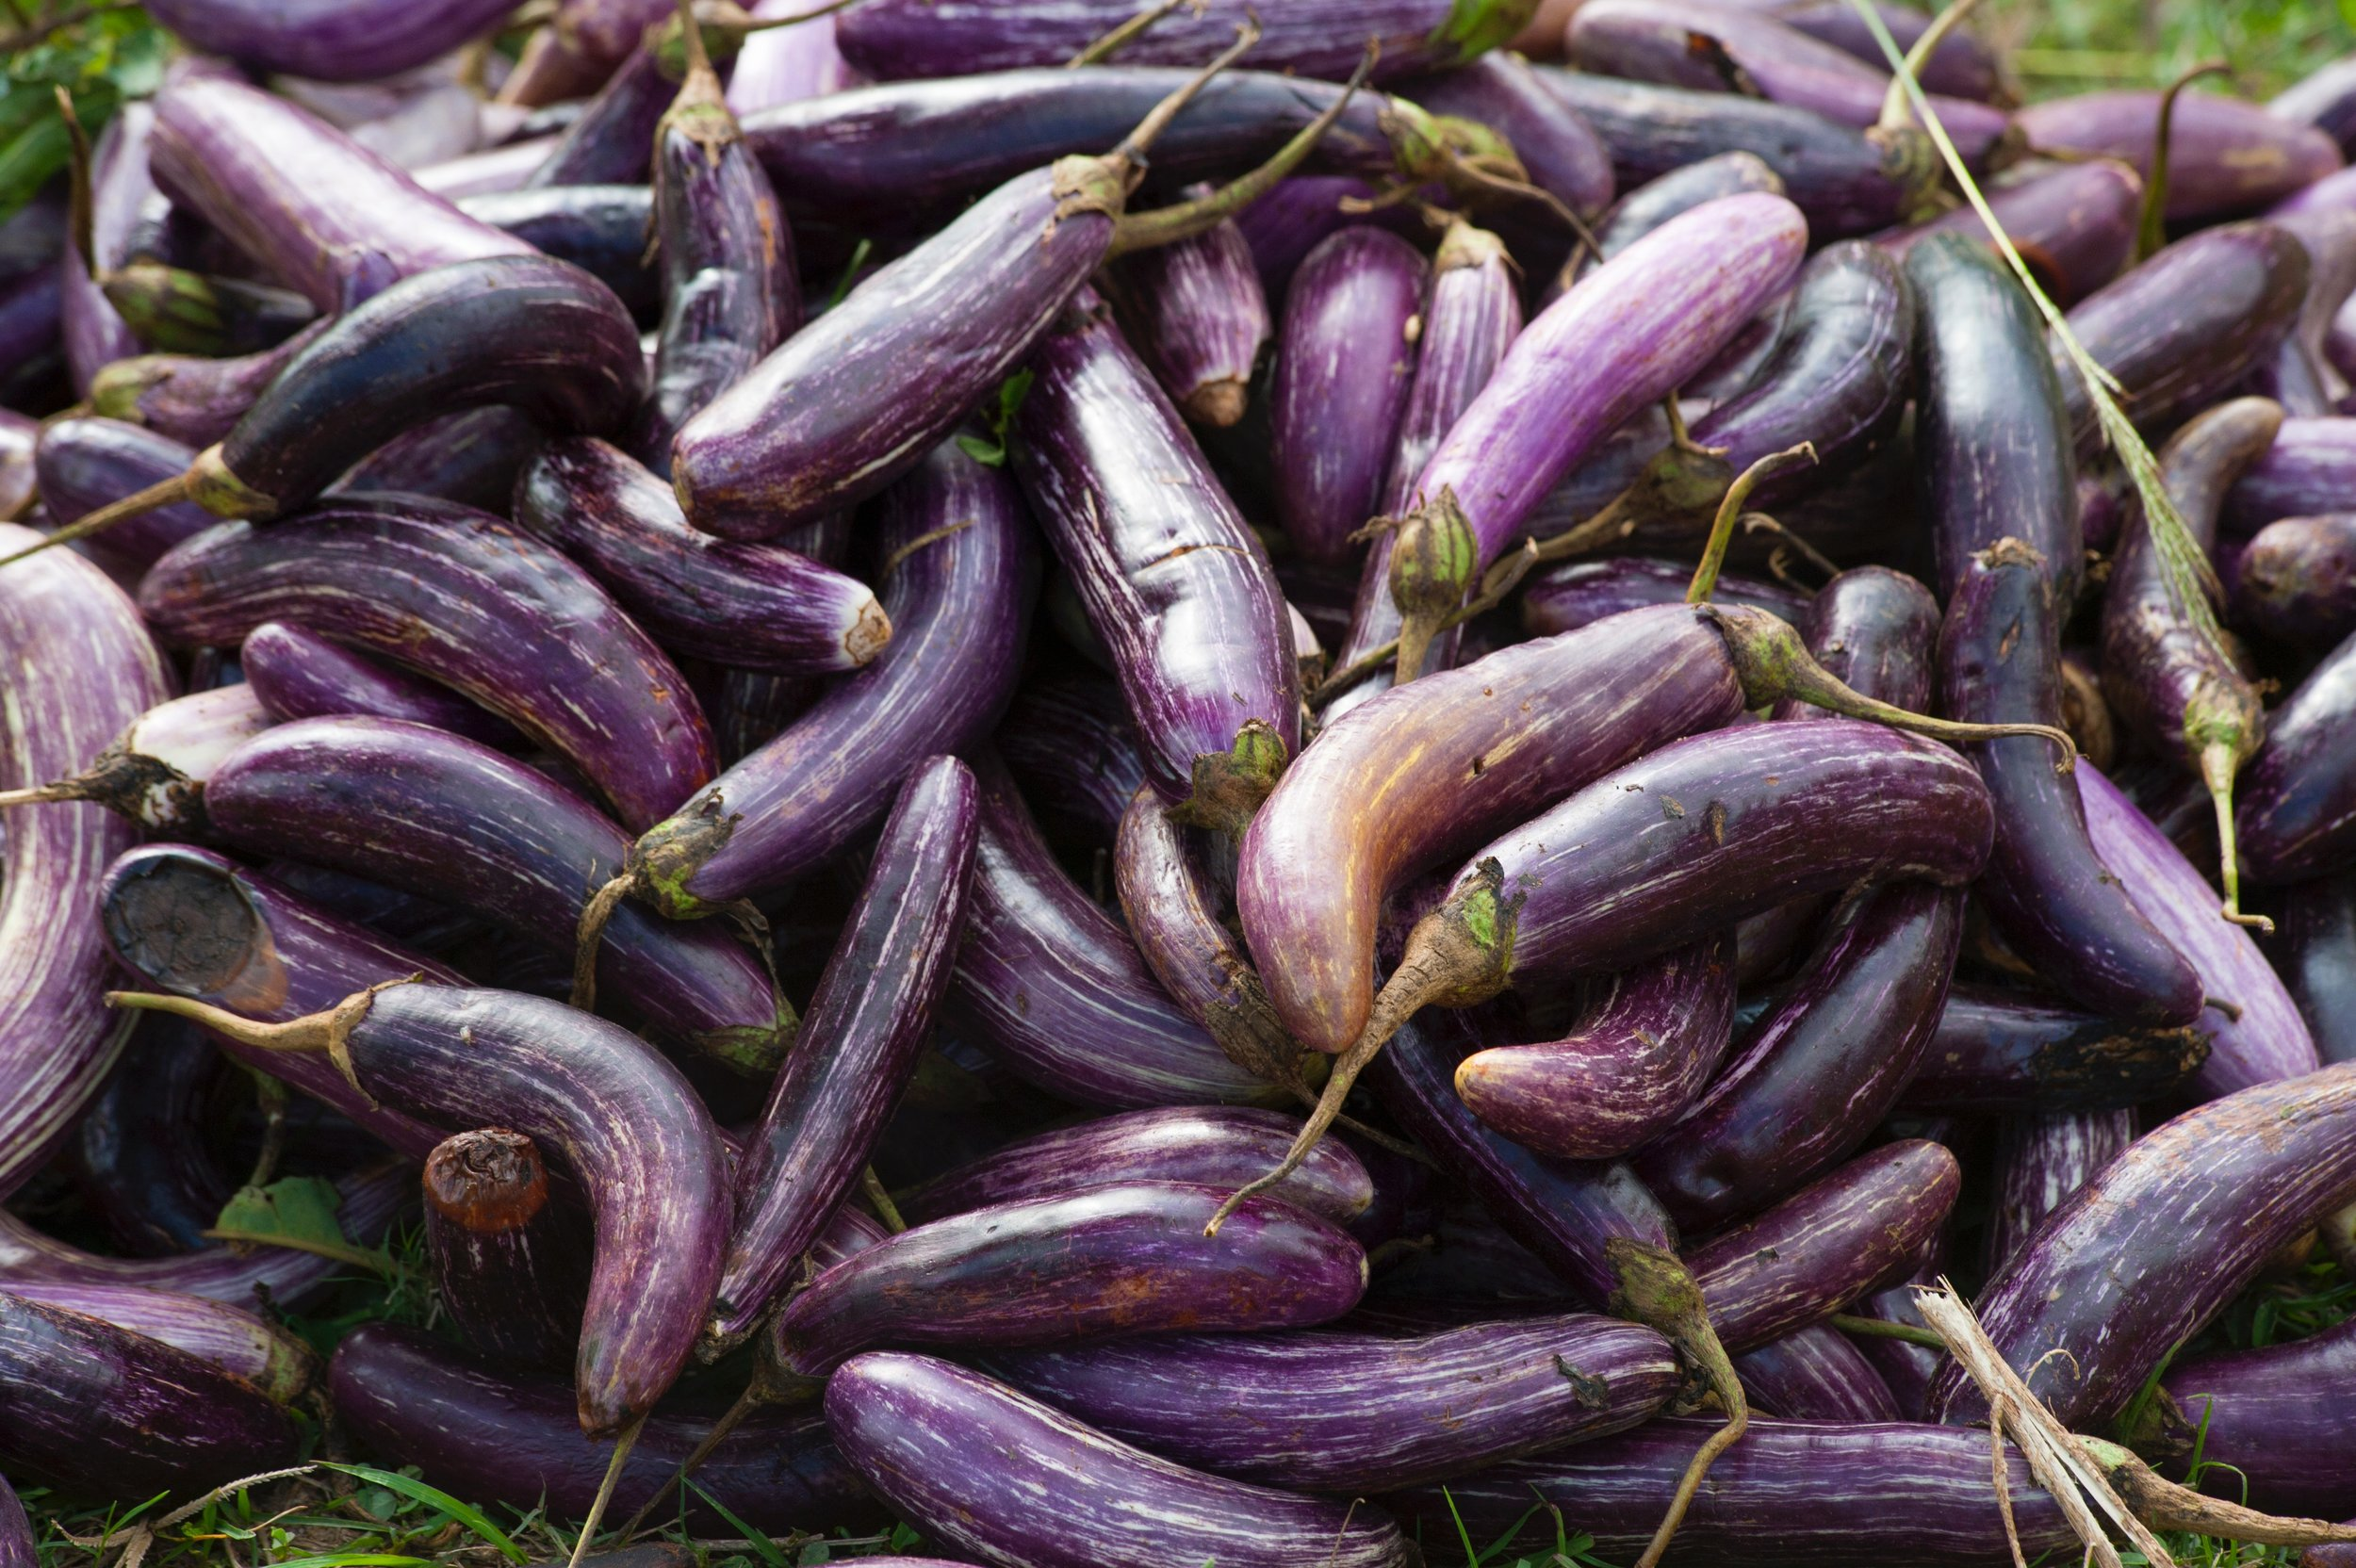 agriculture-aubergine-close-up-321551.jpg